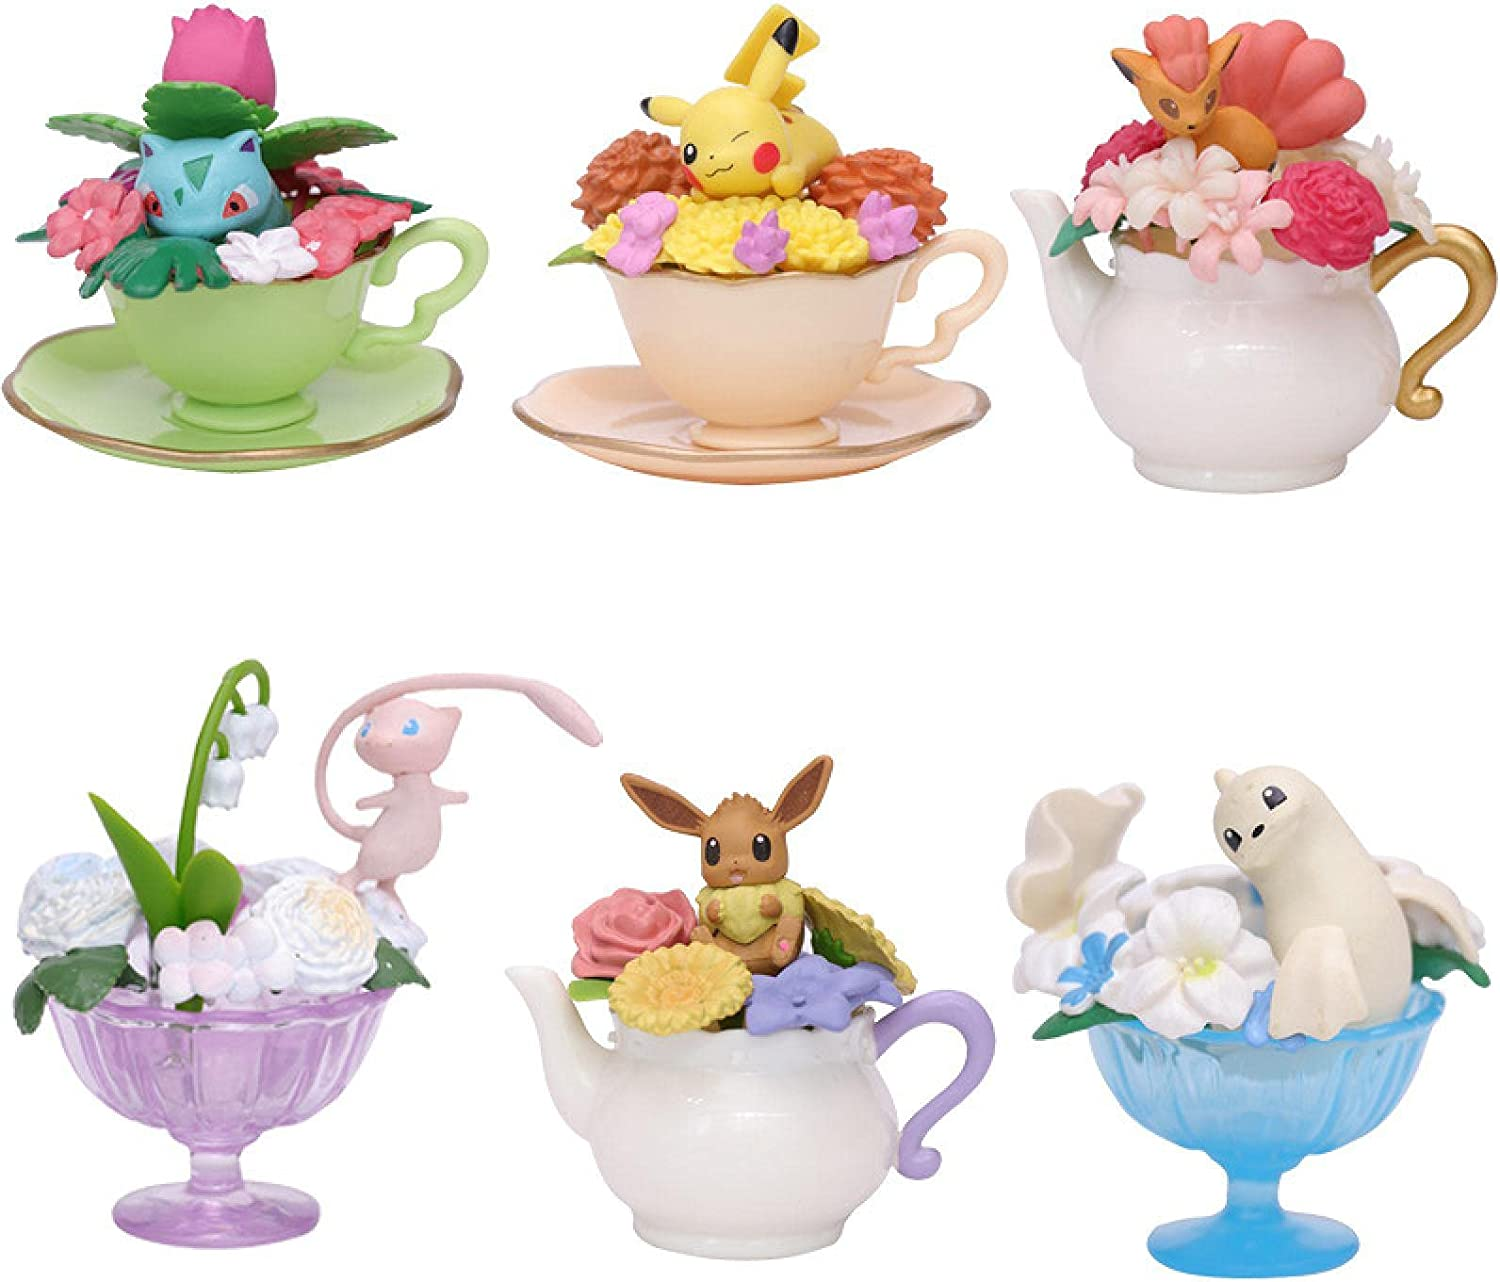 6Pcs 5-7Cm Minneapolis Mall Pokemon Blind Special Campaign Box Toy Doll Little Dream Flower Teacup